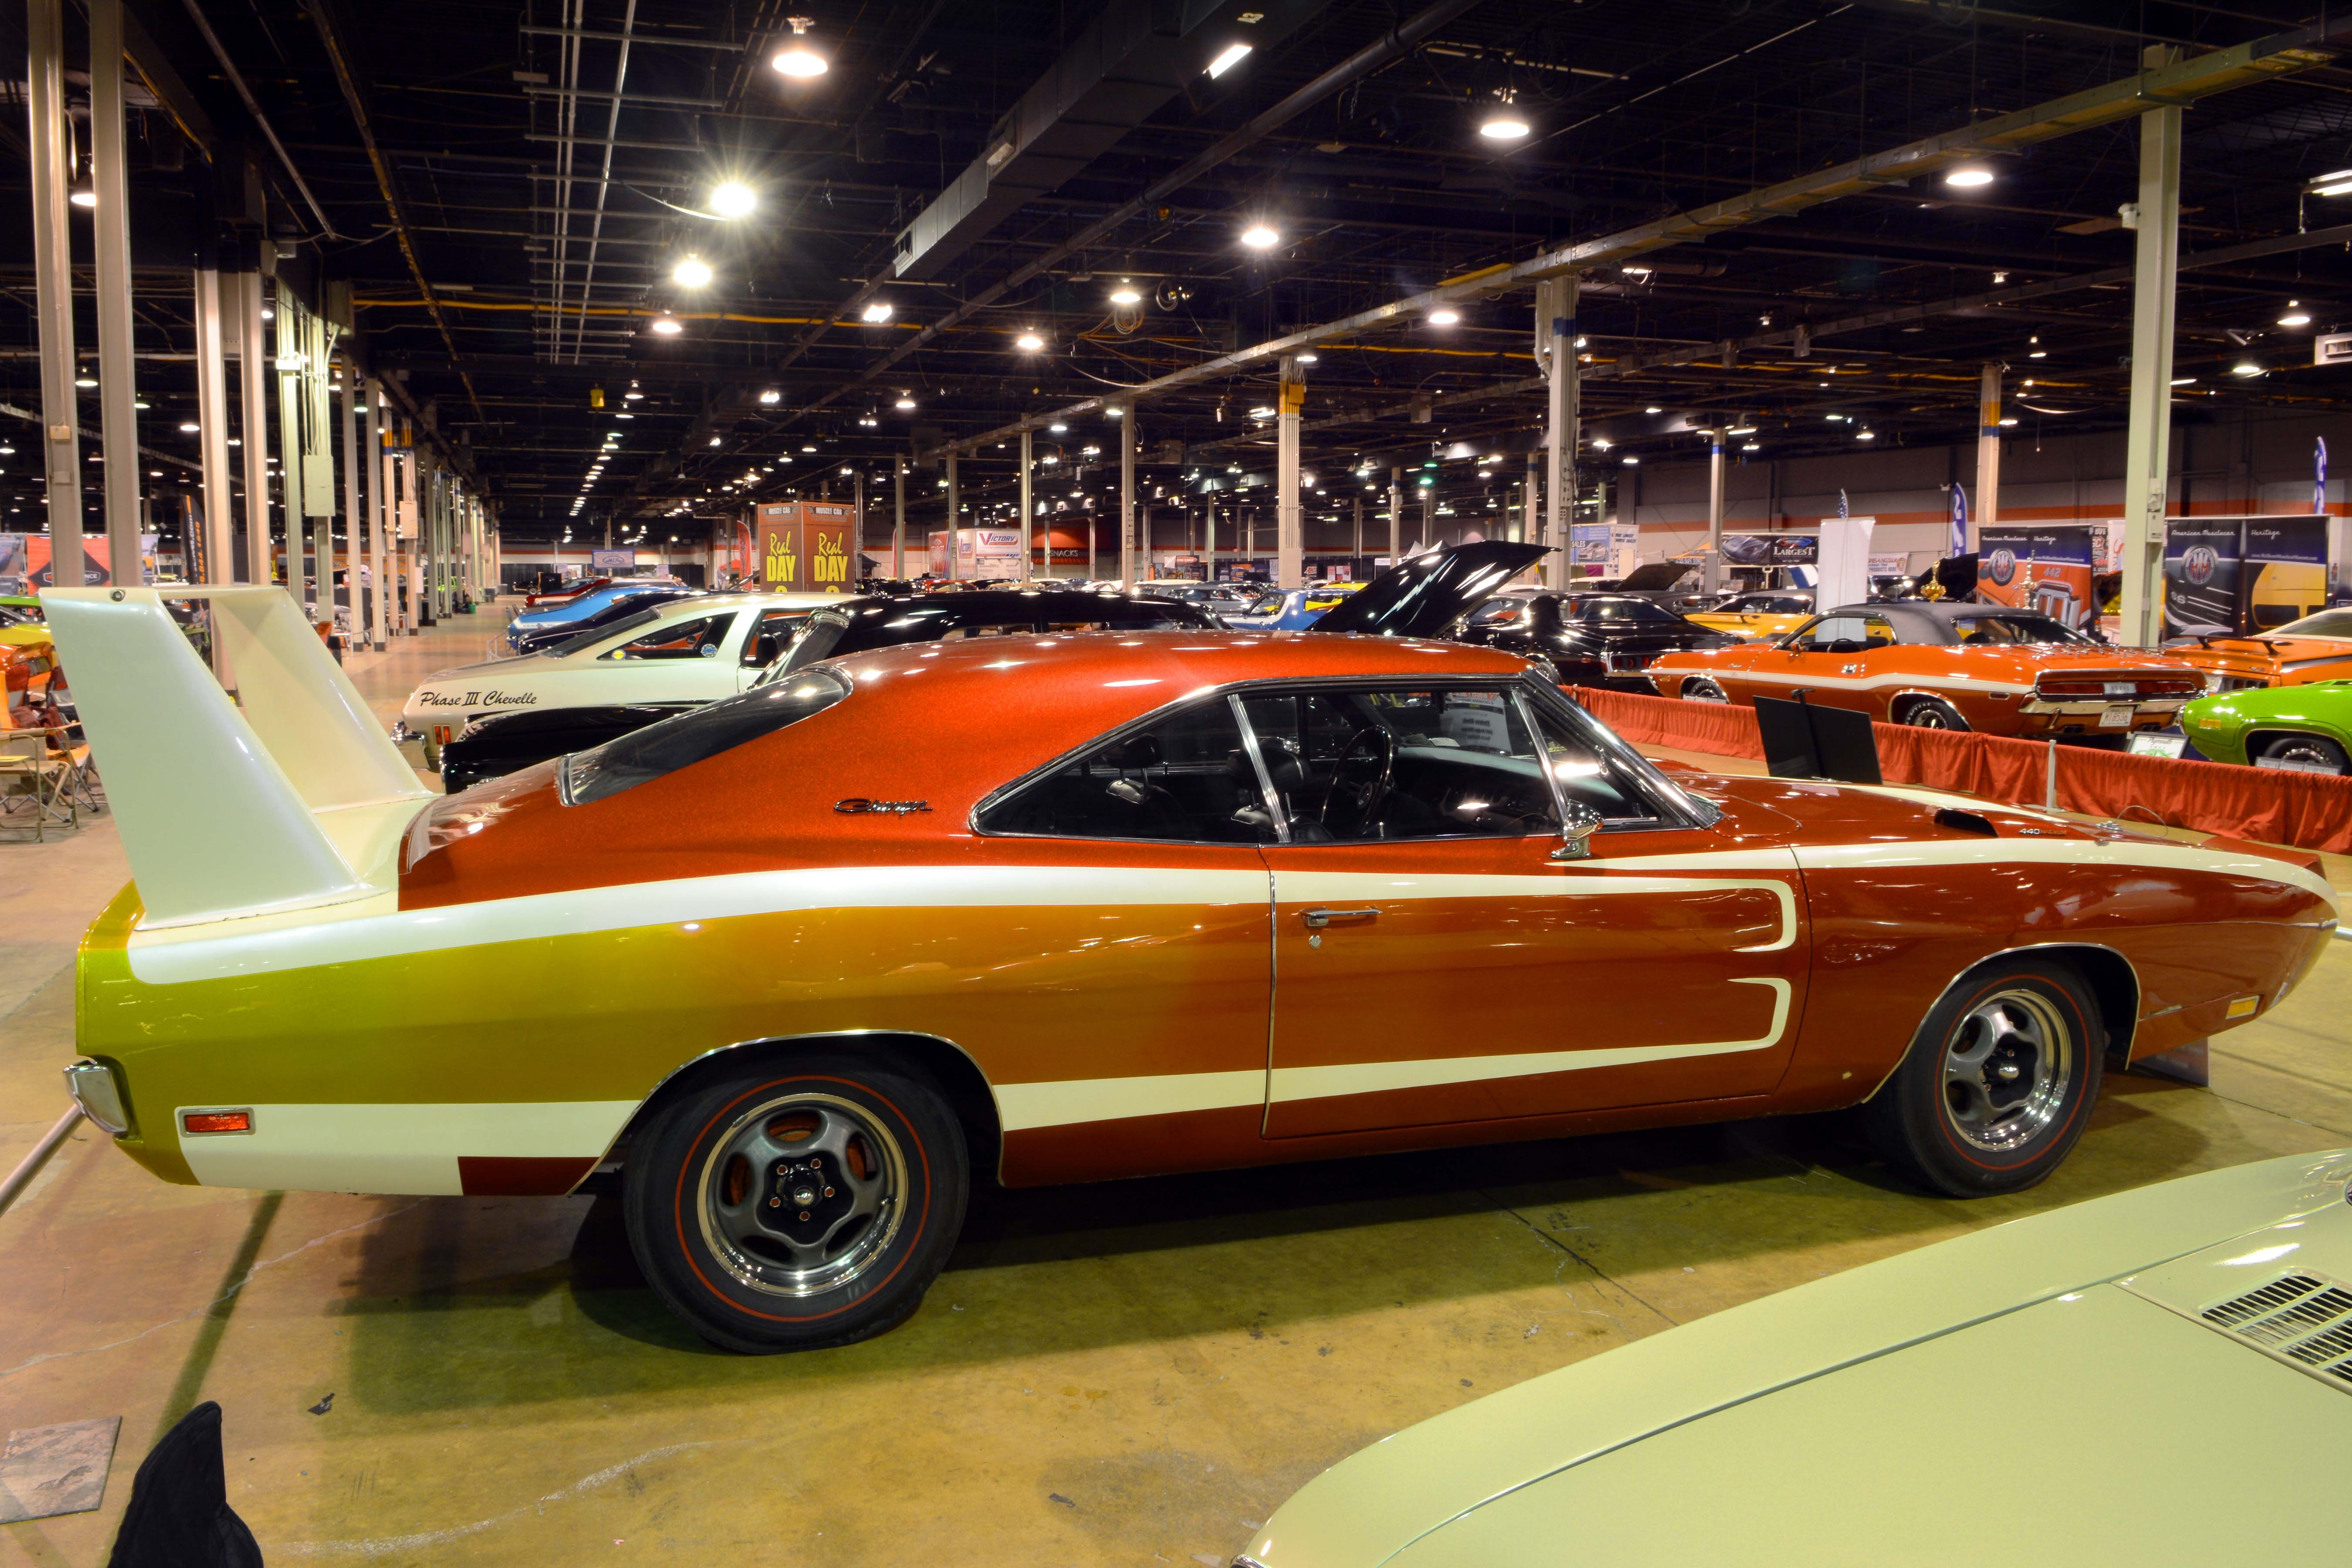 19. Best Day 2 Mopar – 1969 Psychedelic Charger Daytona – Stefano Bimbi There were only a couple of Mopars in this line-up, but this so-called 'Disco Daytona' with its groovy paint was our pick here. All-original driveline (440-375-hp), under 17,000 miles, only three owners since new, impressive paperwork and more only added to its special status; parked in 1972, the aero warrior got a lot of attention here. After all, most cars from this particular release found in such complete condition are expensively restored to stock due to collector prices, so to see Stefano Bimbi's unrestored driver with a 'strobotic' 1960s paint scheme was a treat. And yes, those original Motor Wheel Spyder mags sealed the deal!